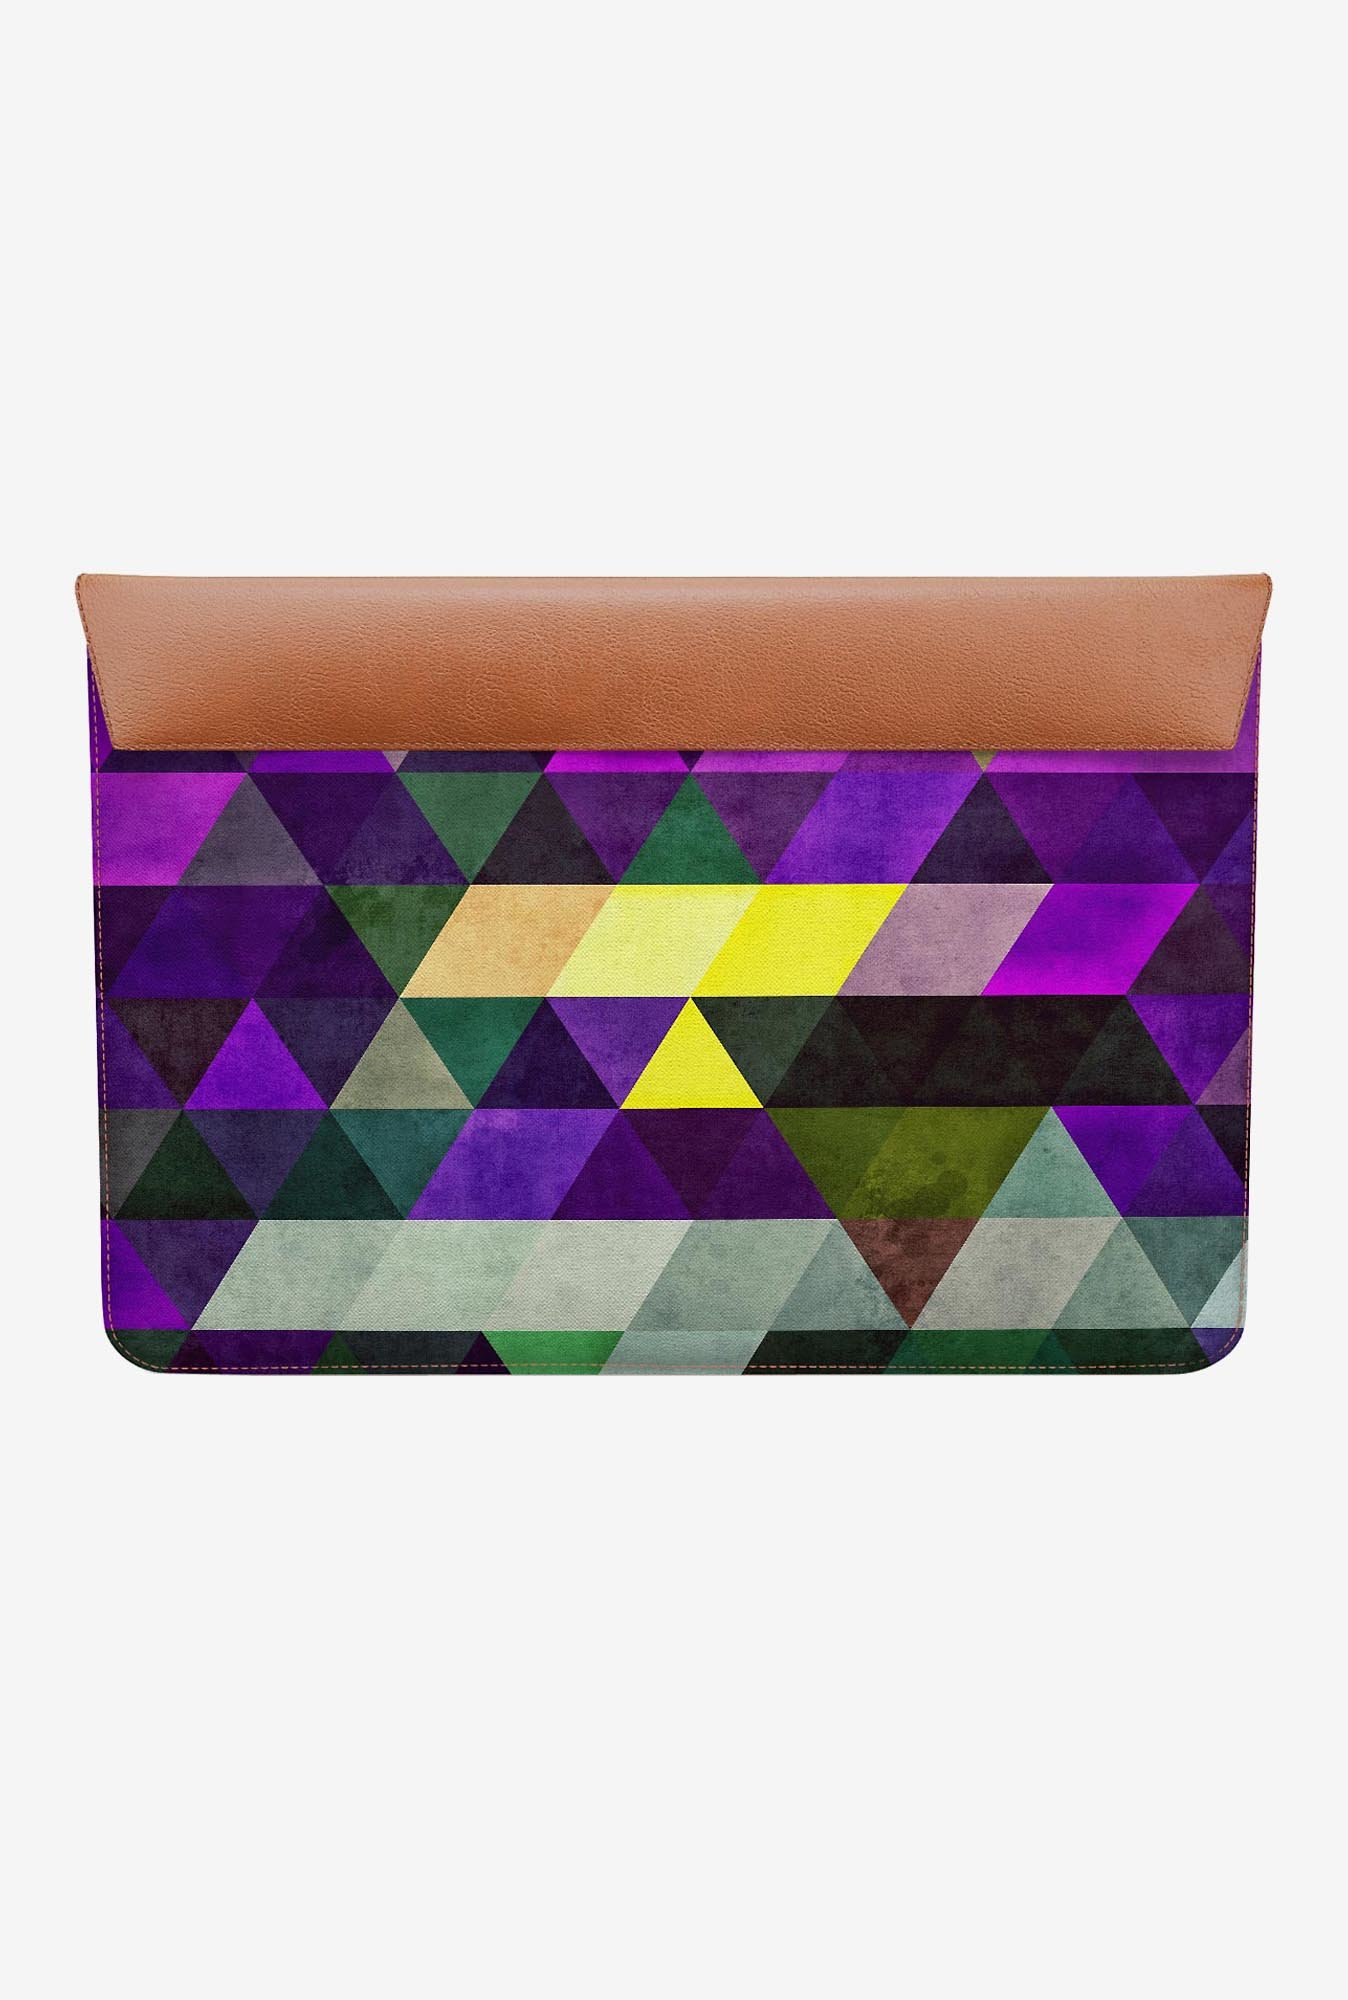 "DailyObjects Lylyx Macbook Air 11"" Envelope Sleeve"